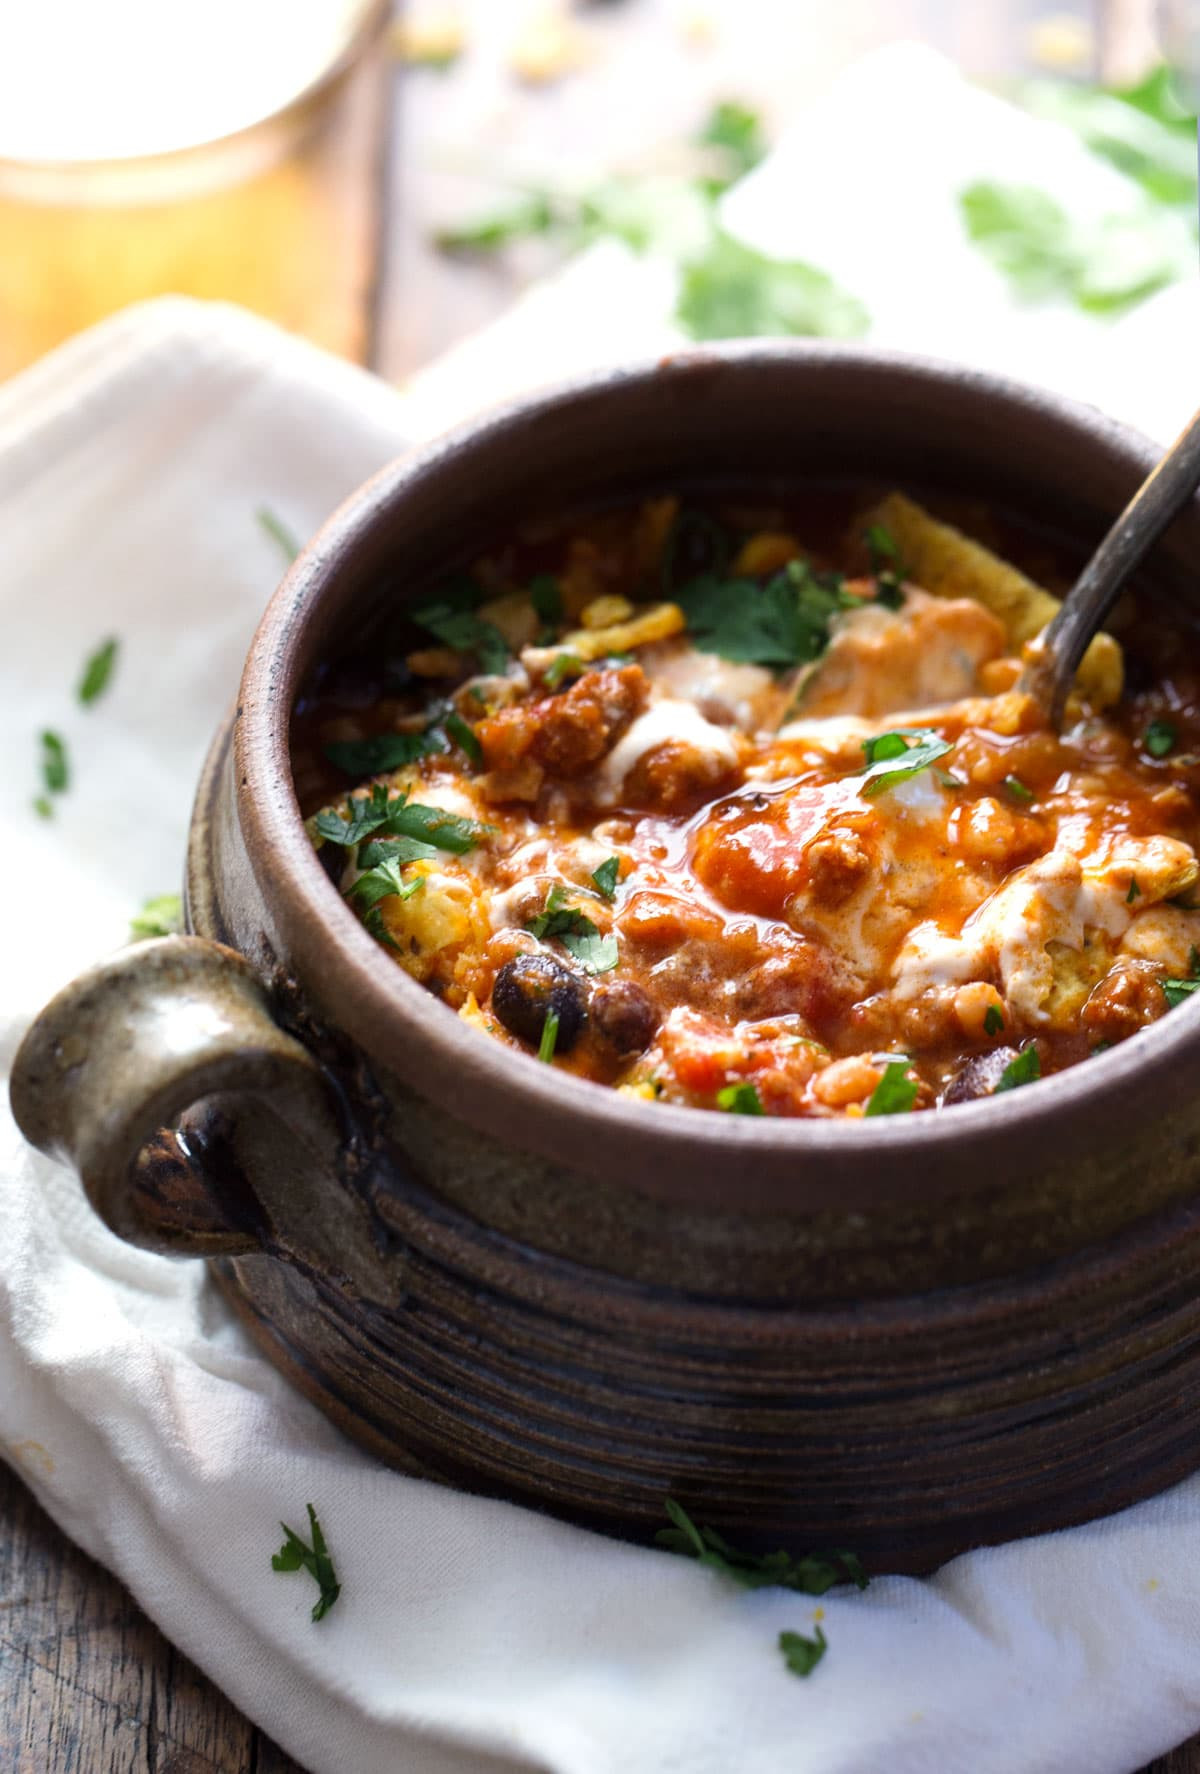 Spicy Turkey Chili Recipe  30 Minute Spicy Ancho Turkey Chili Pinch of Yum